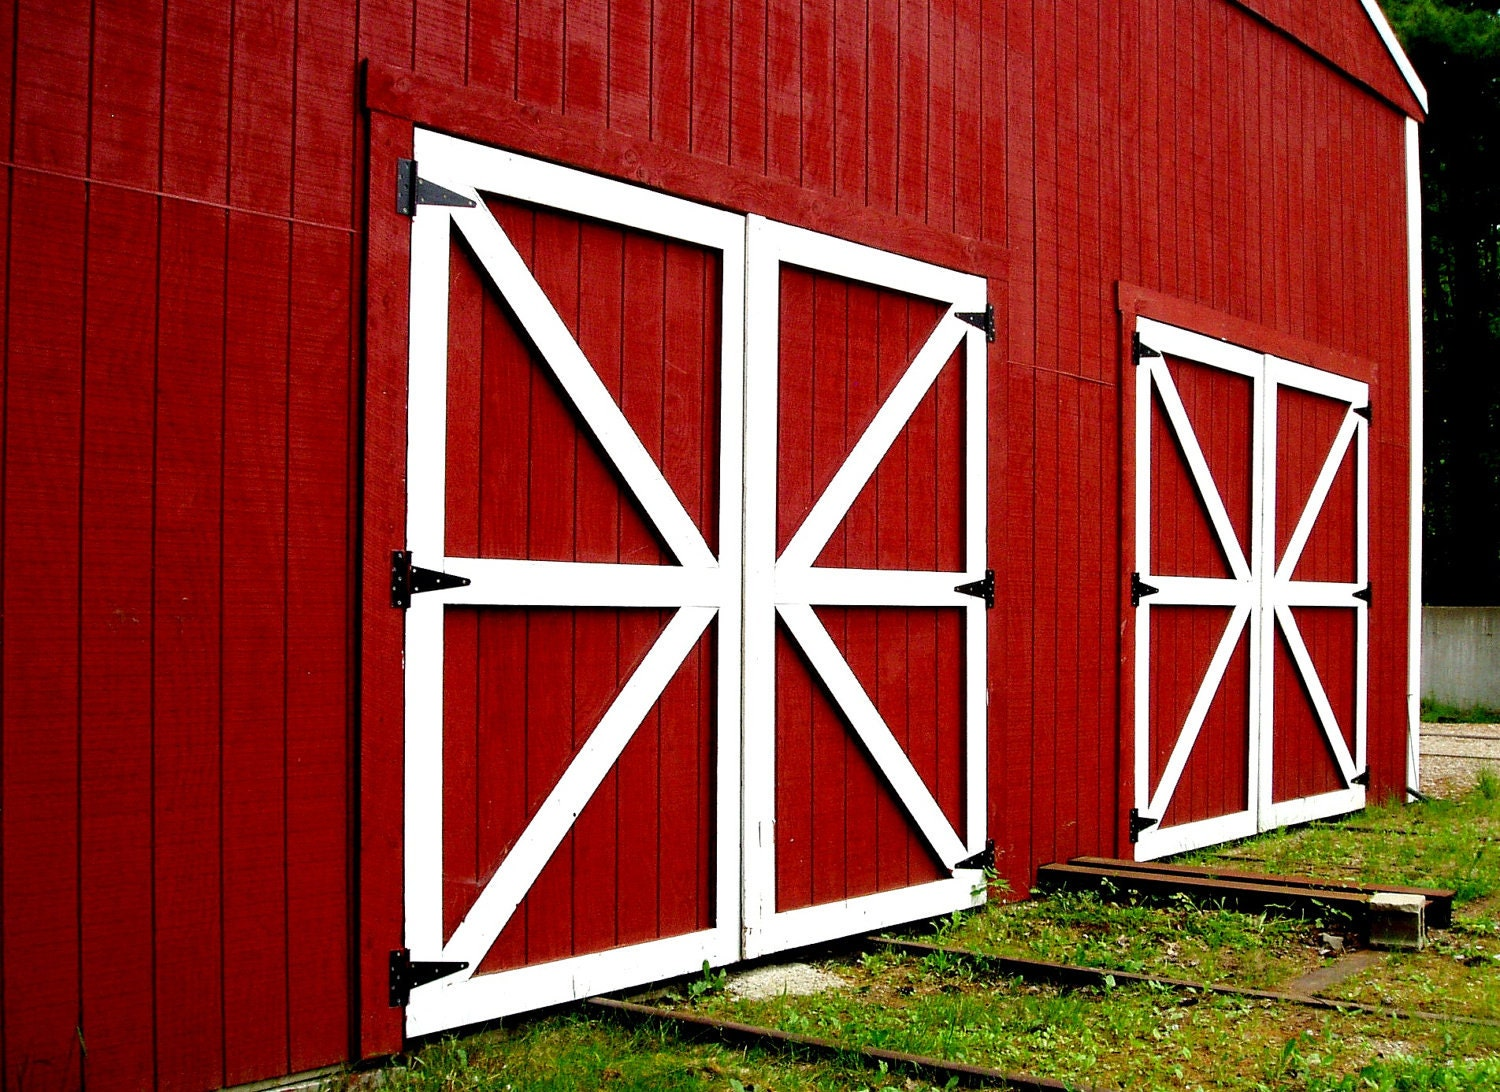 Rustic decor red photography barn doors photo by 132photography - Barn door patterns ...